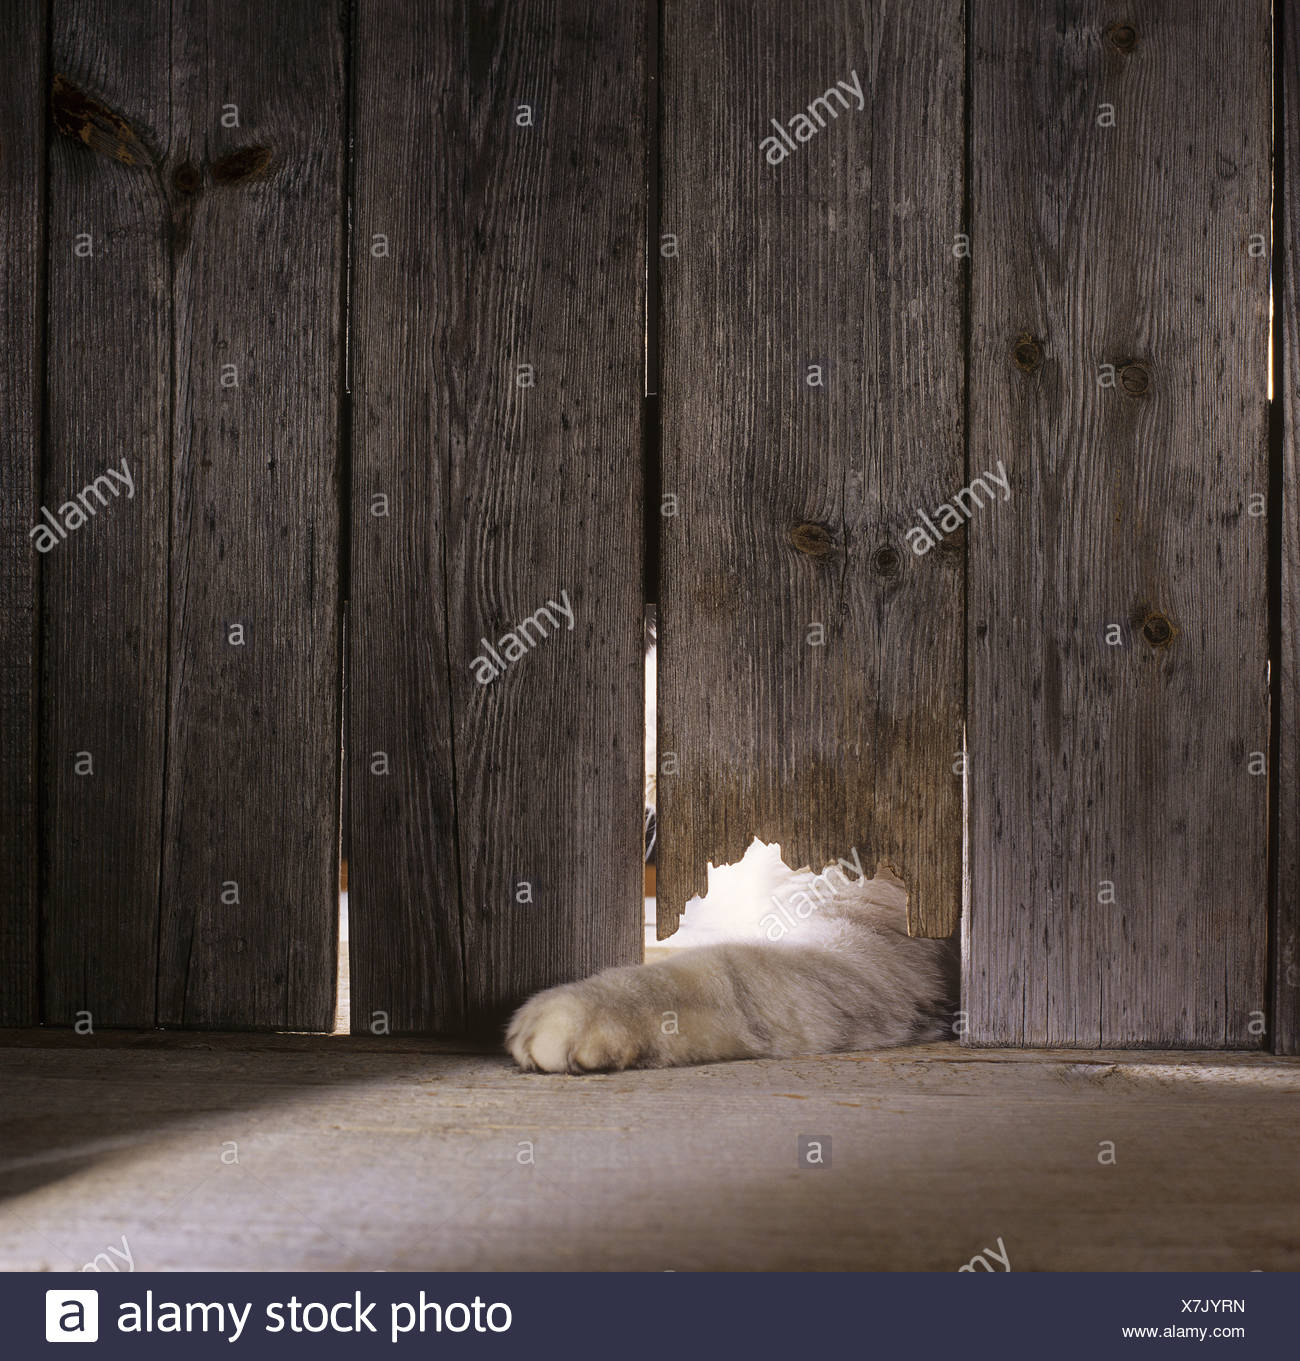 cat in woodshed - Stock Image